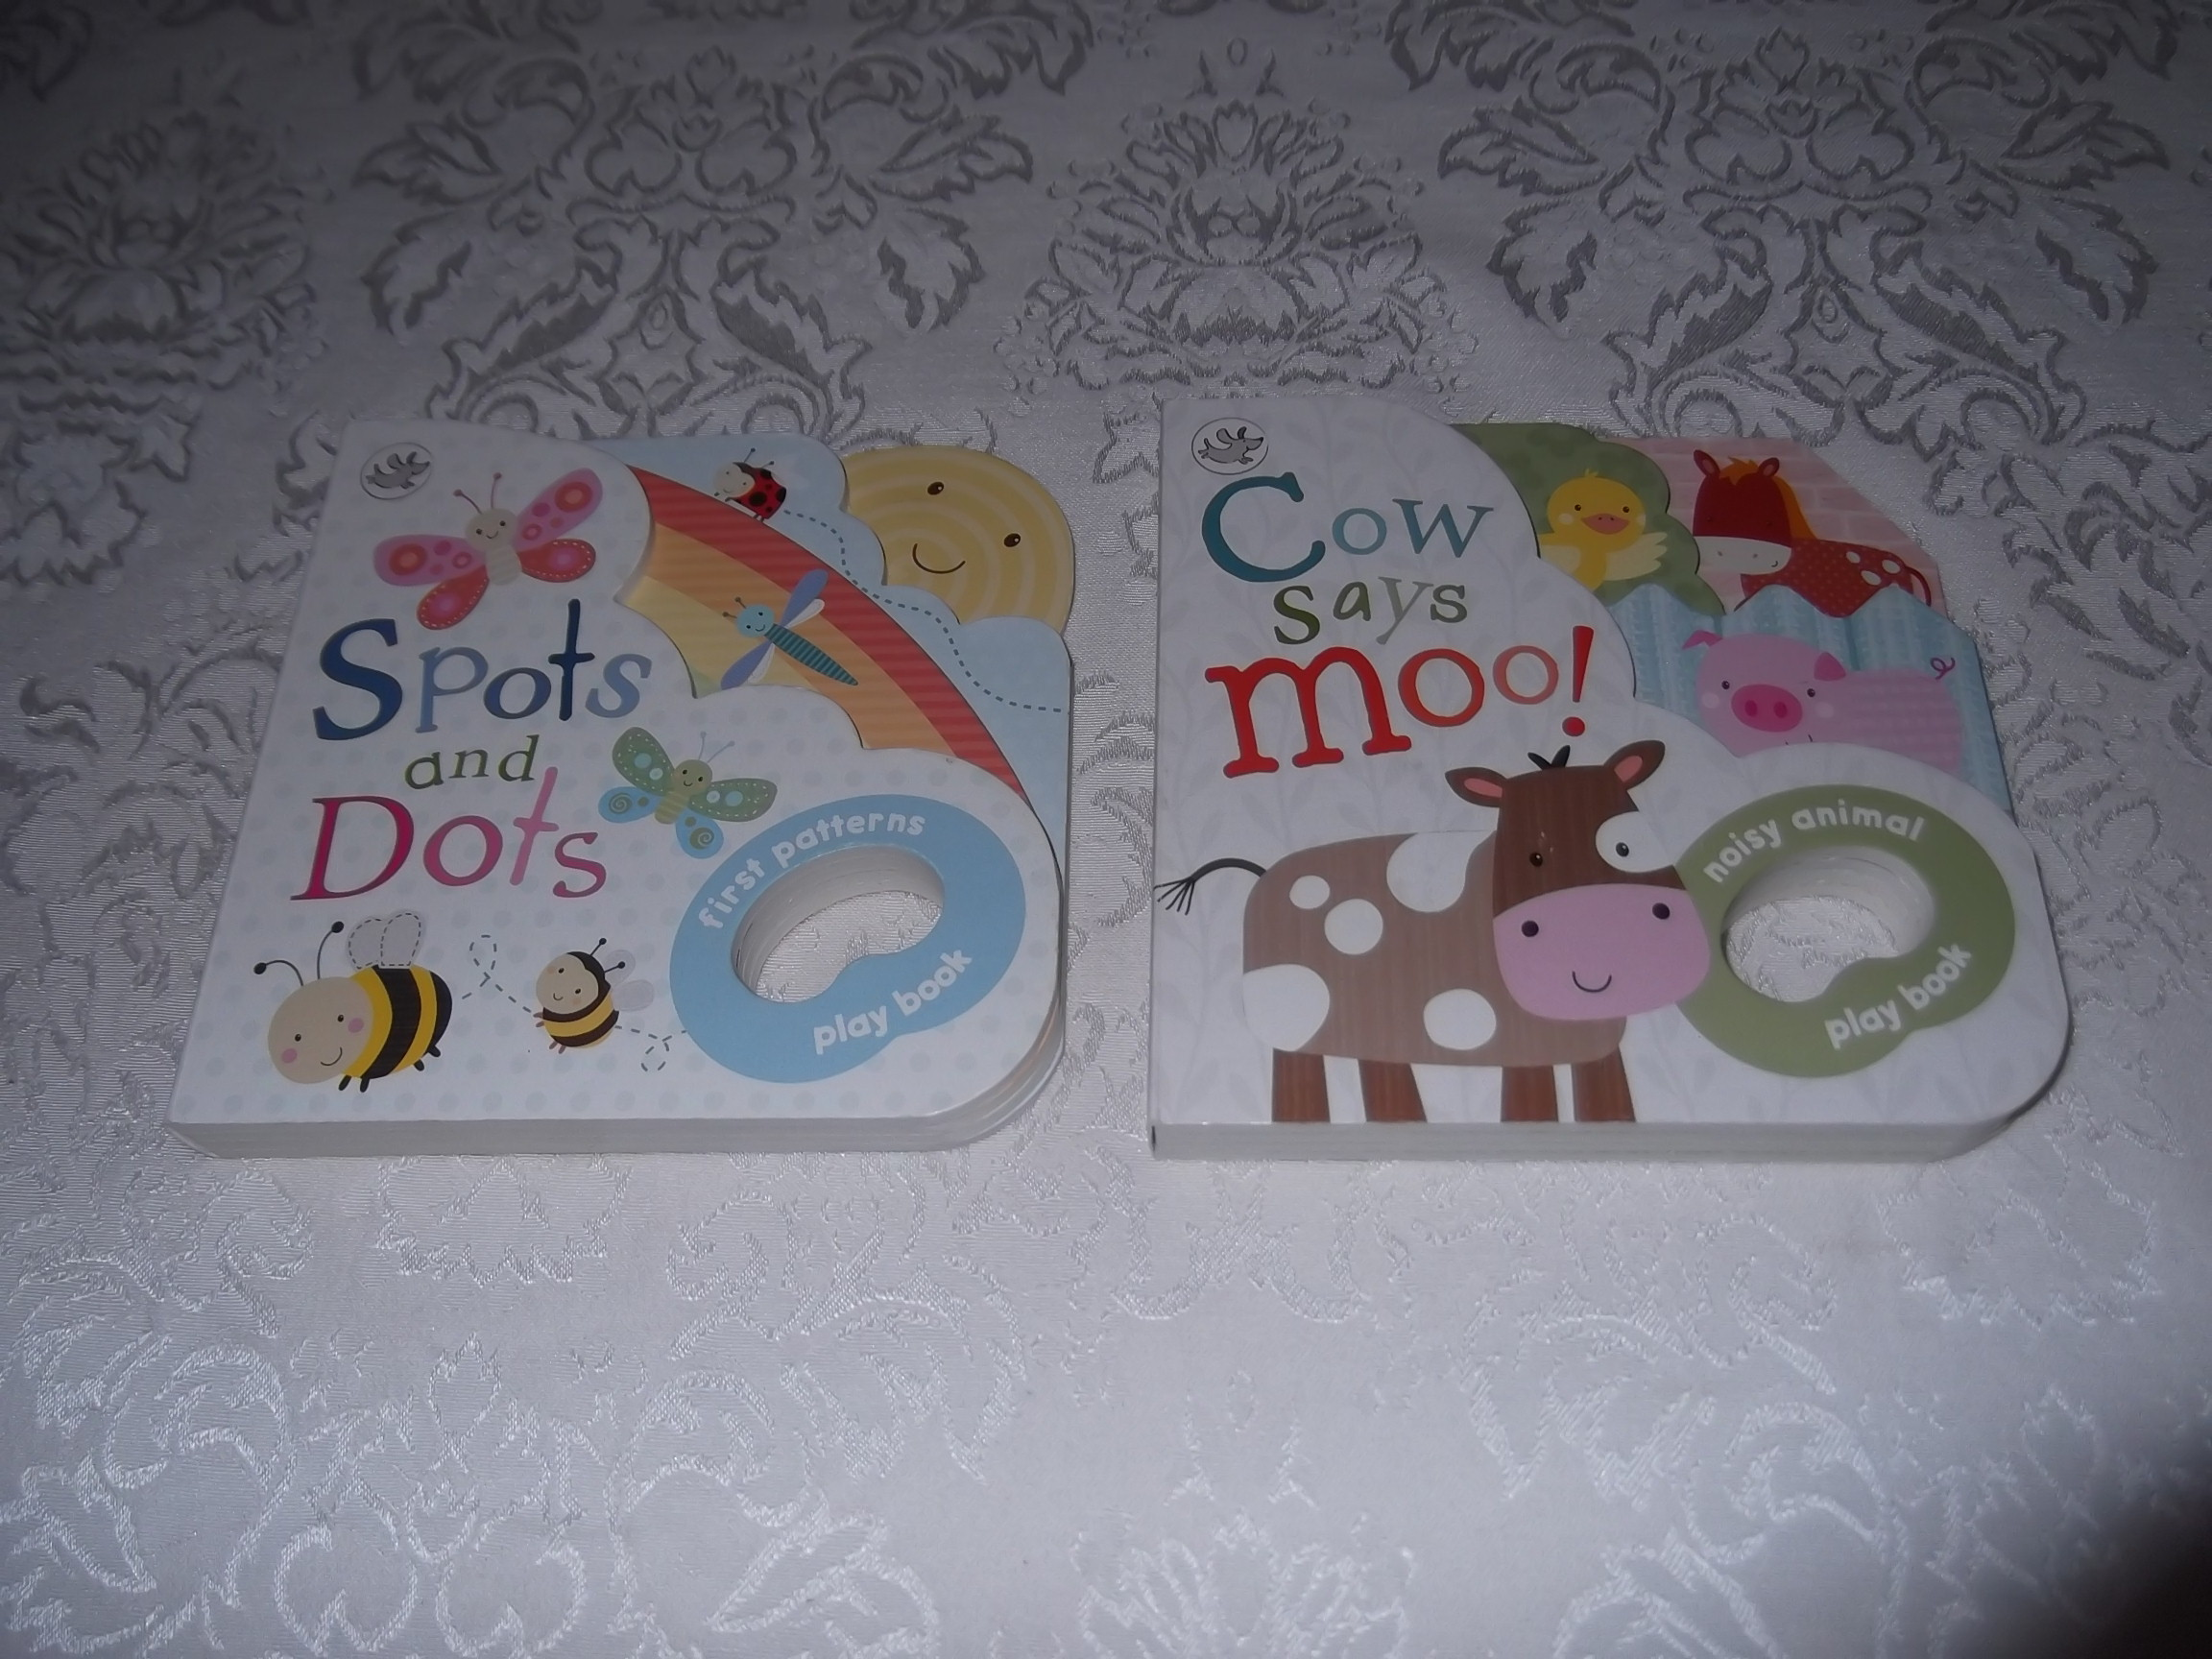 Spots and Dots Cow Says Moo! Little Learners Brand New Board Book Set